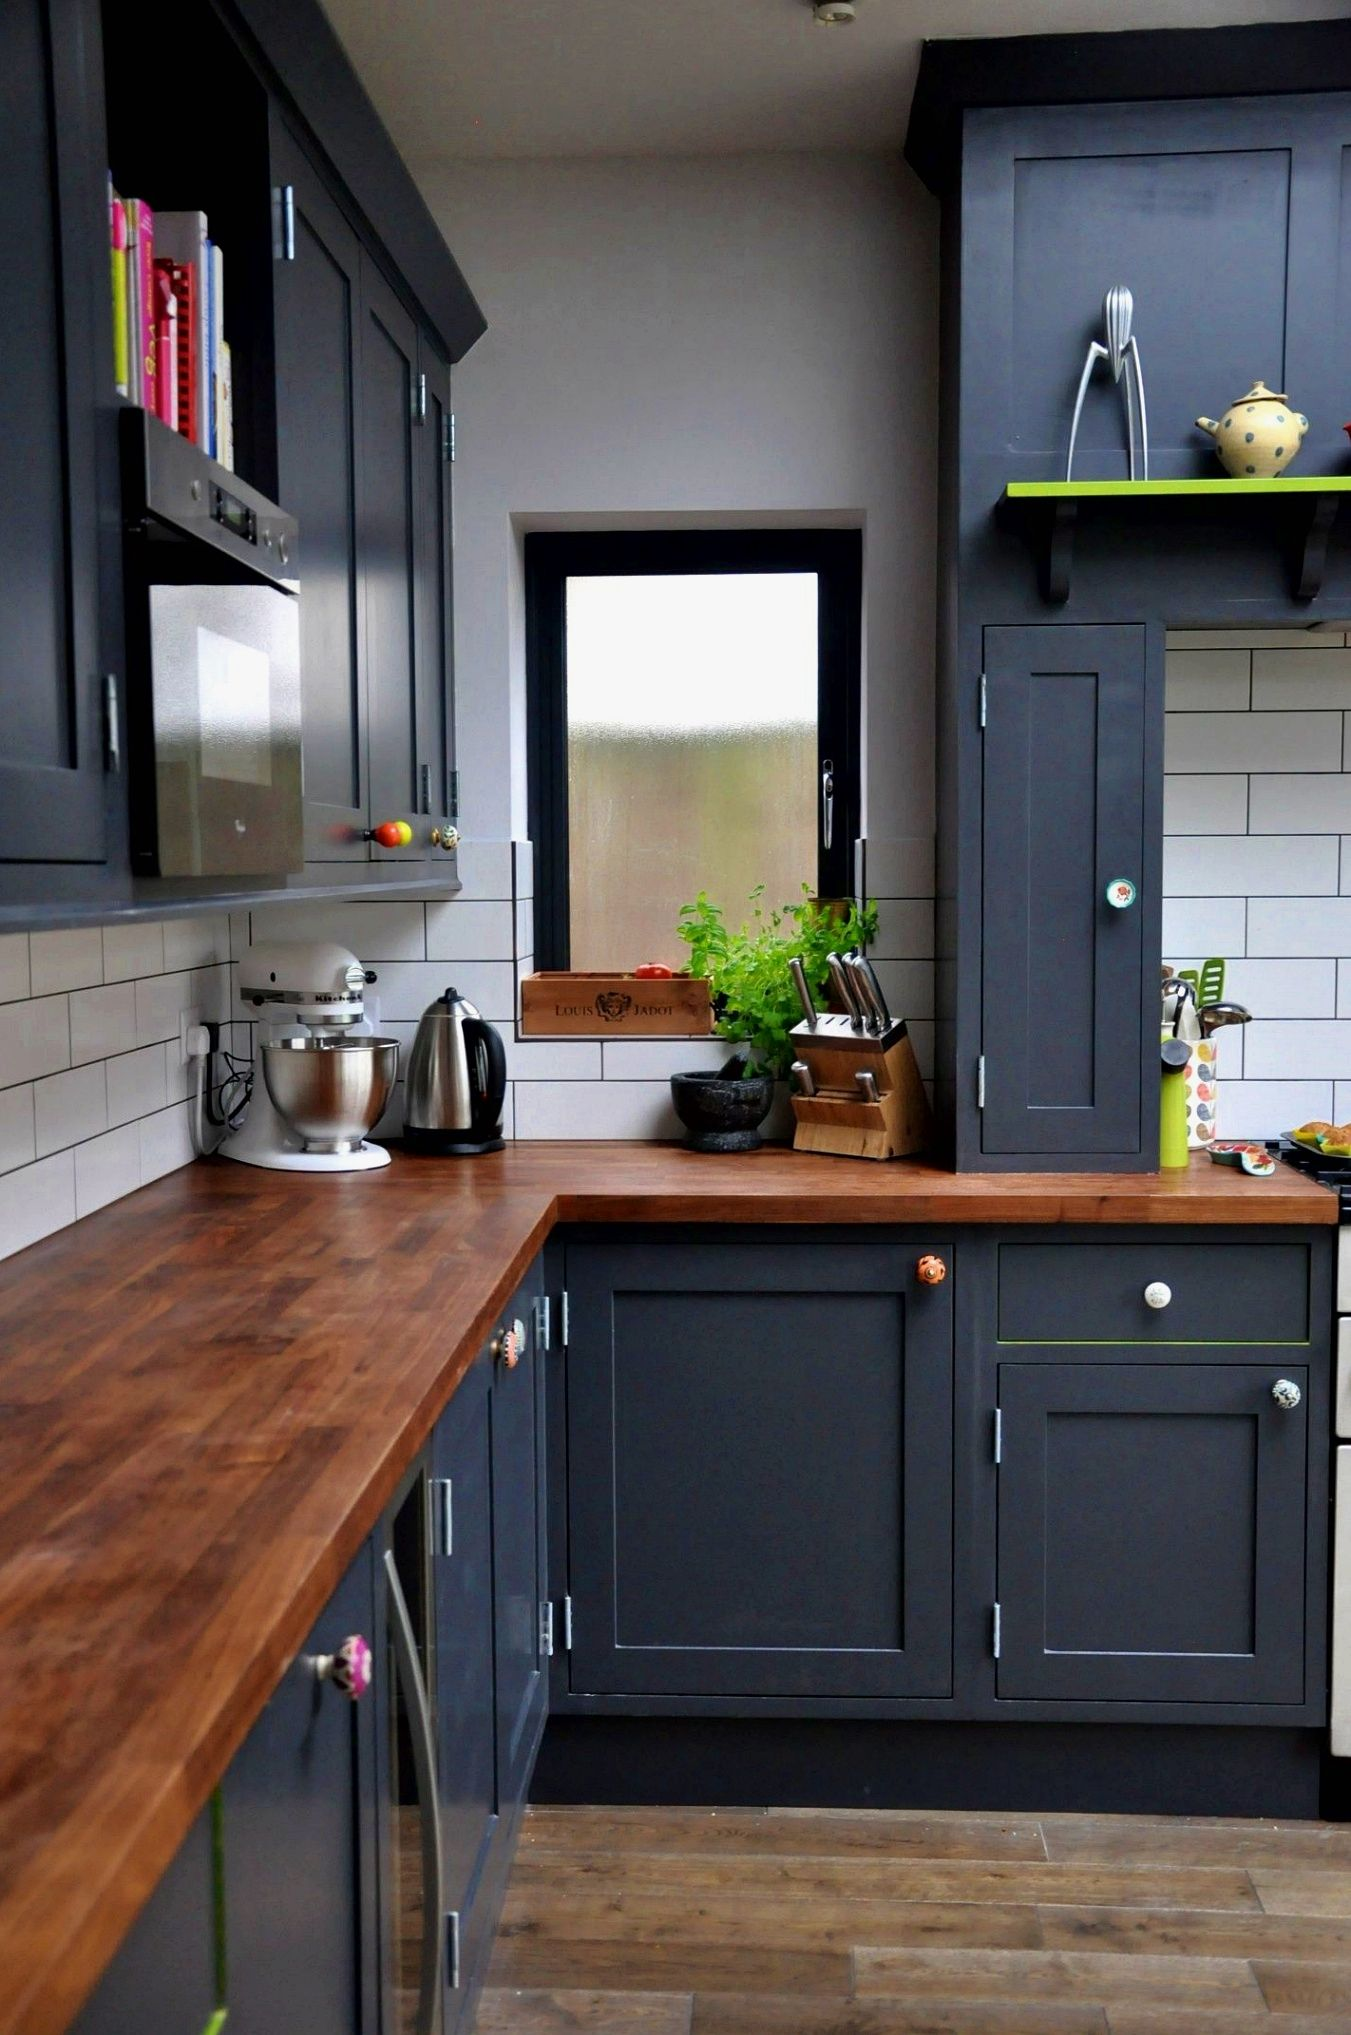 Kitchen Decor Info A Lot Of People Have A Small Room Within Our Home Which We Would Like To Make A Black Kitchen Cabinets New Kitchen Cabinets Rustic Kitchen